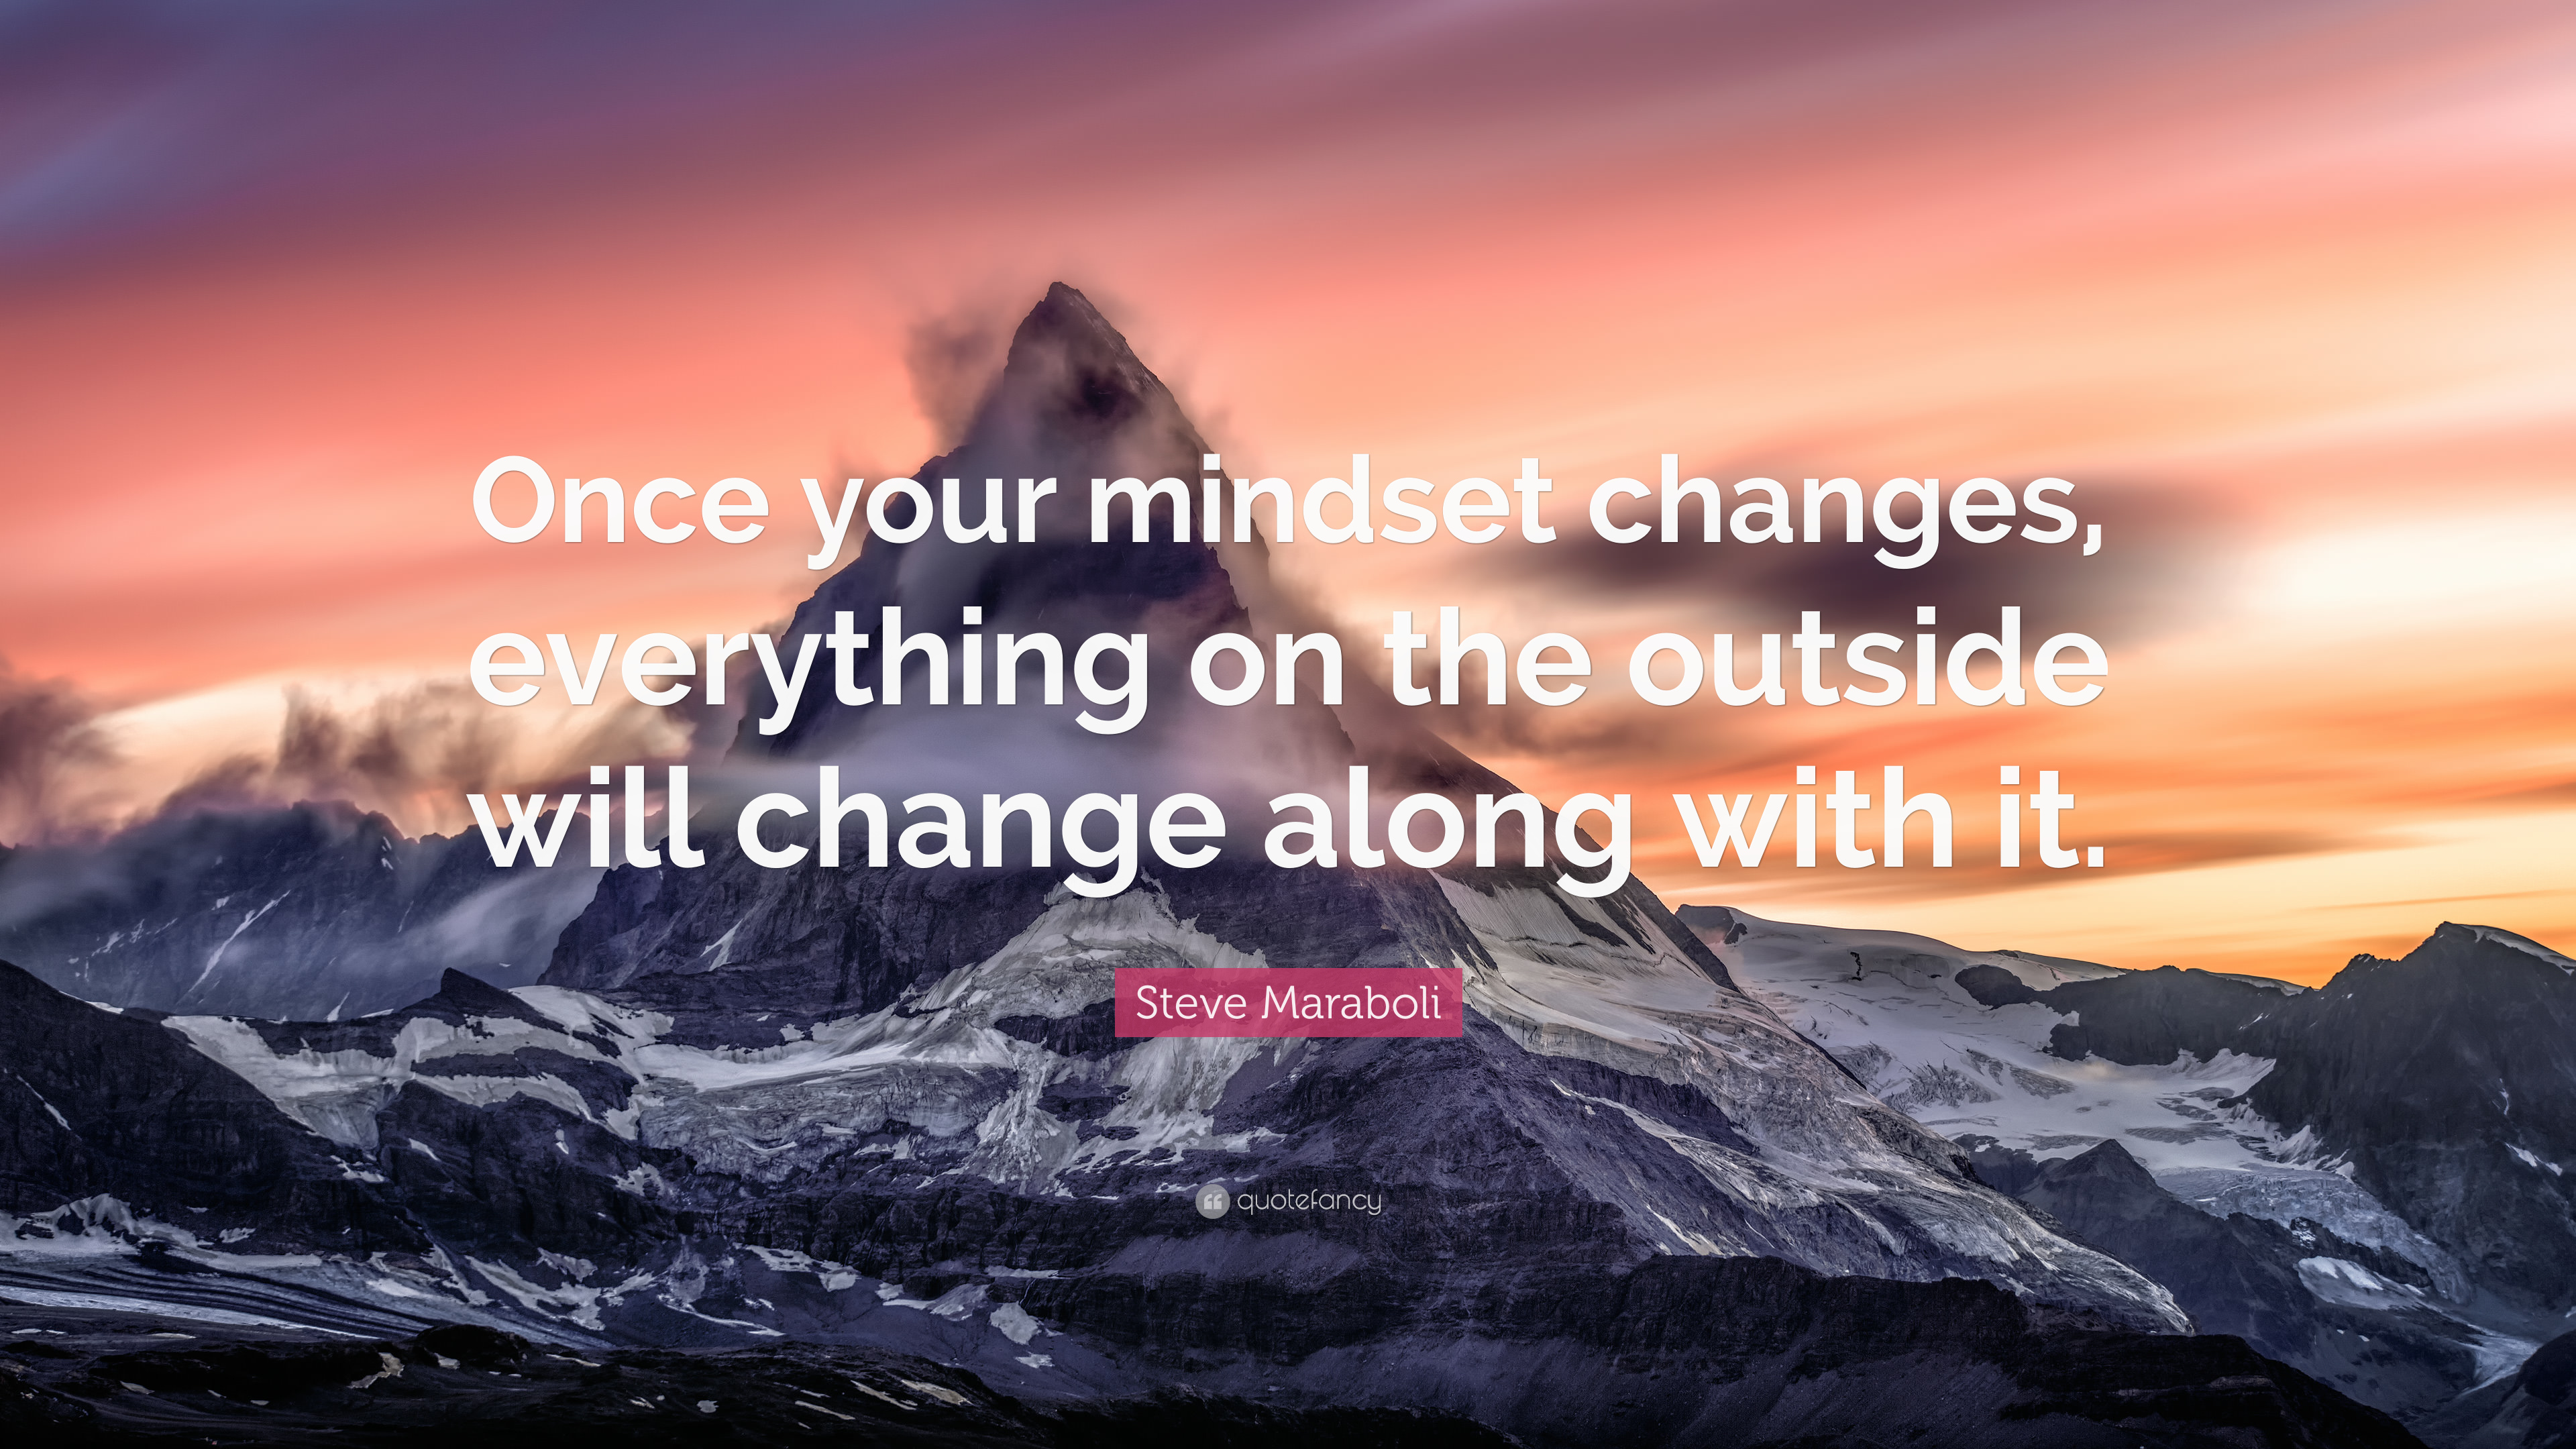 """Steve Maraboli Quote: """"Once your mindset changes, everything on the outside  will change along with it."""" (9 wallpapers) - Quotefancy"""